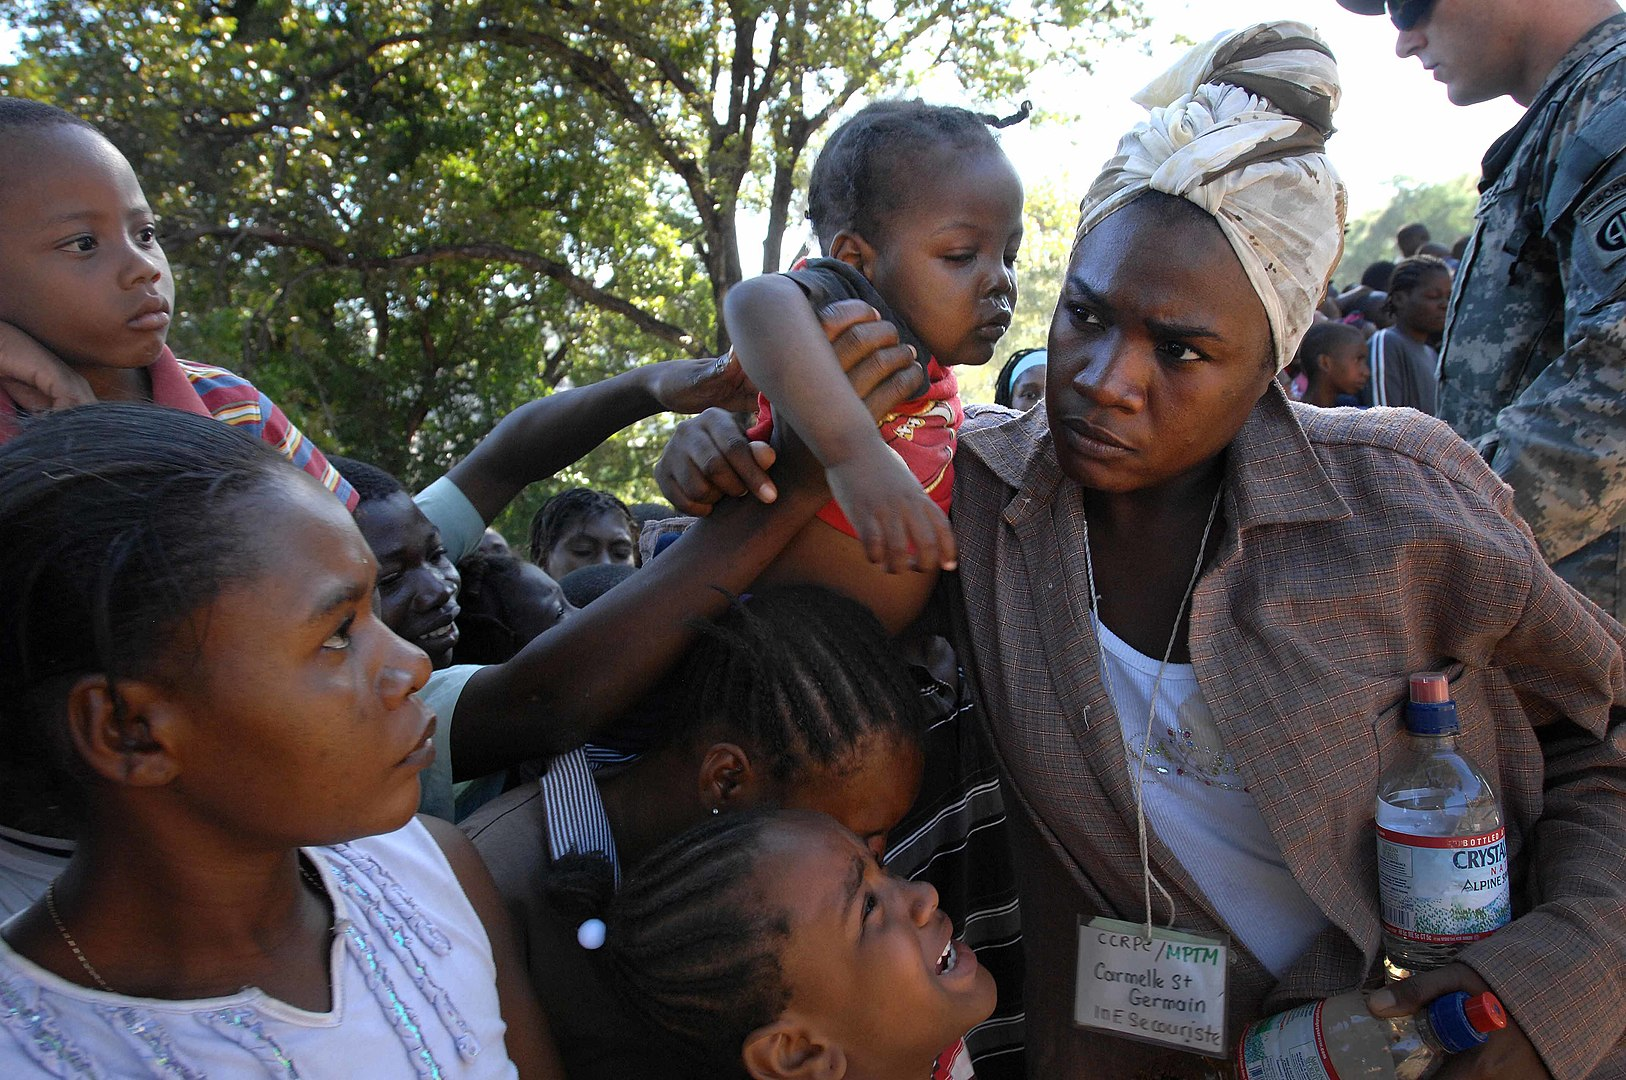 When Helping Hands Hurt: Exploring the Impact of NGOs on Haiti's Path to Recovery